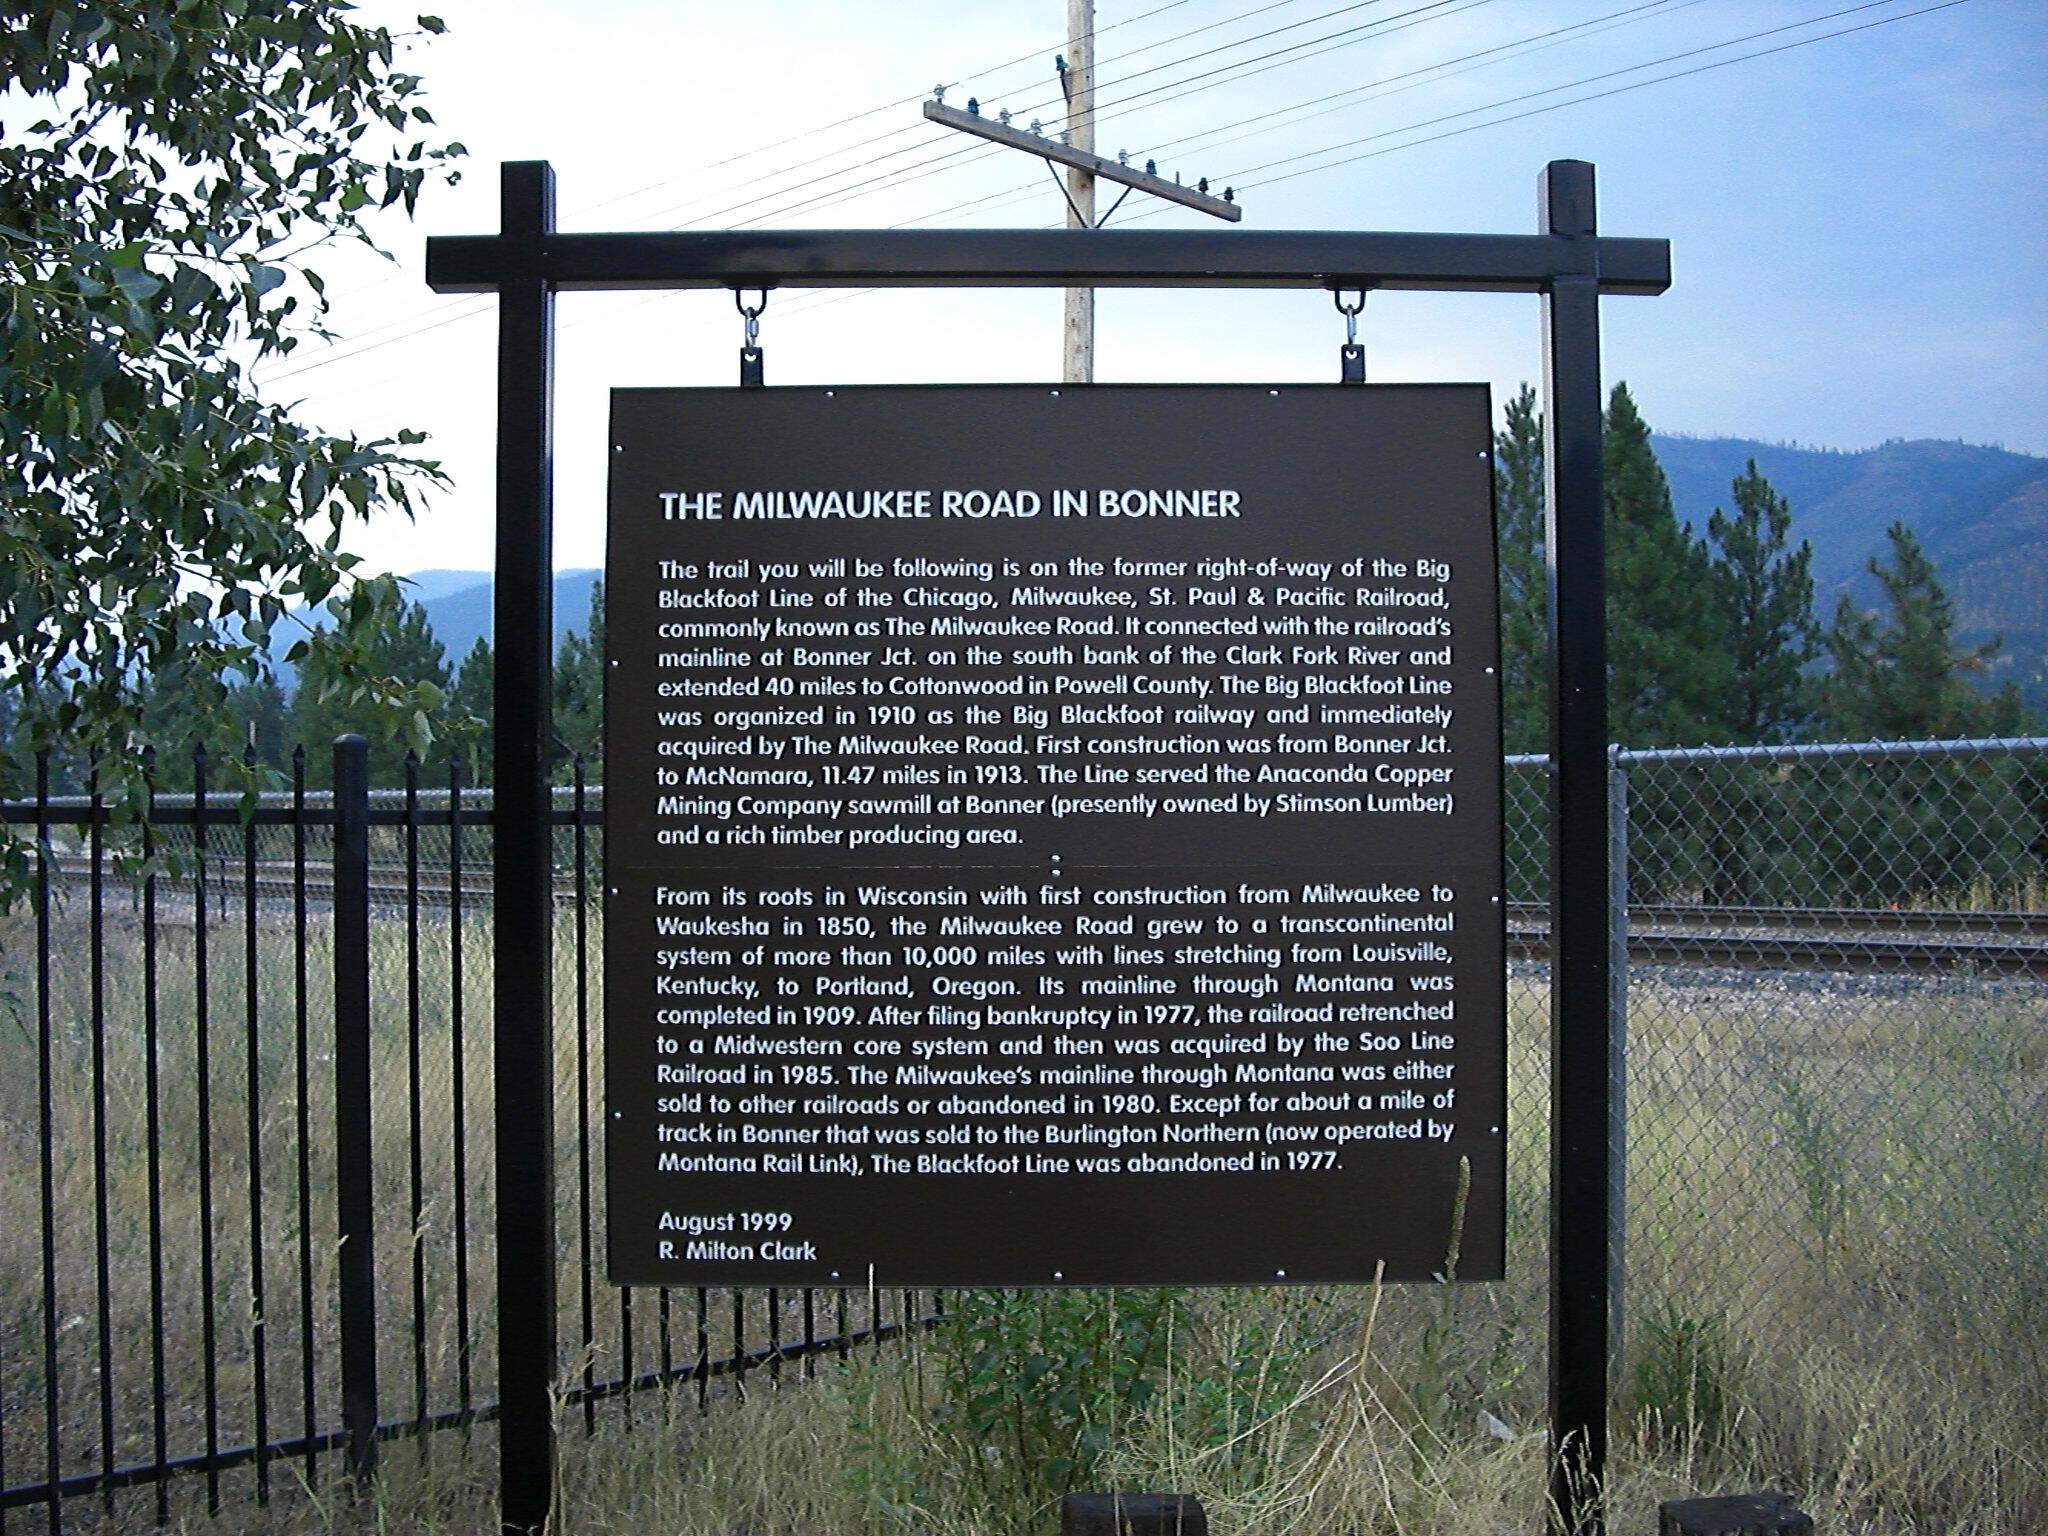 History of The Milwaukee Road trail in Bonner Montana